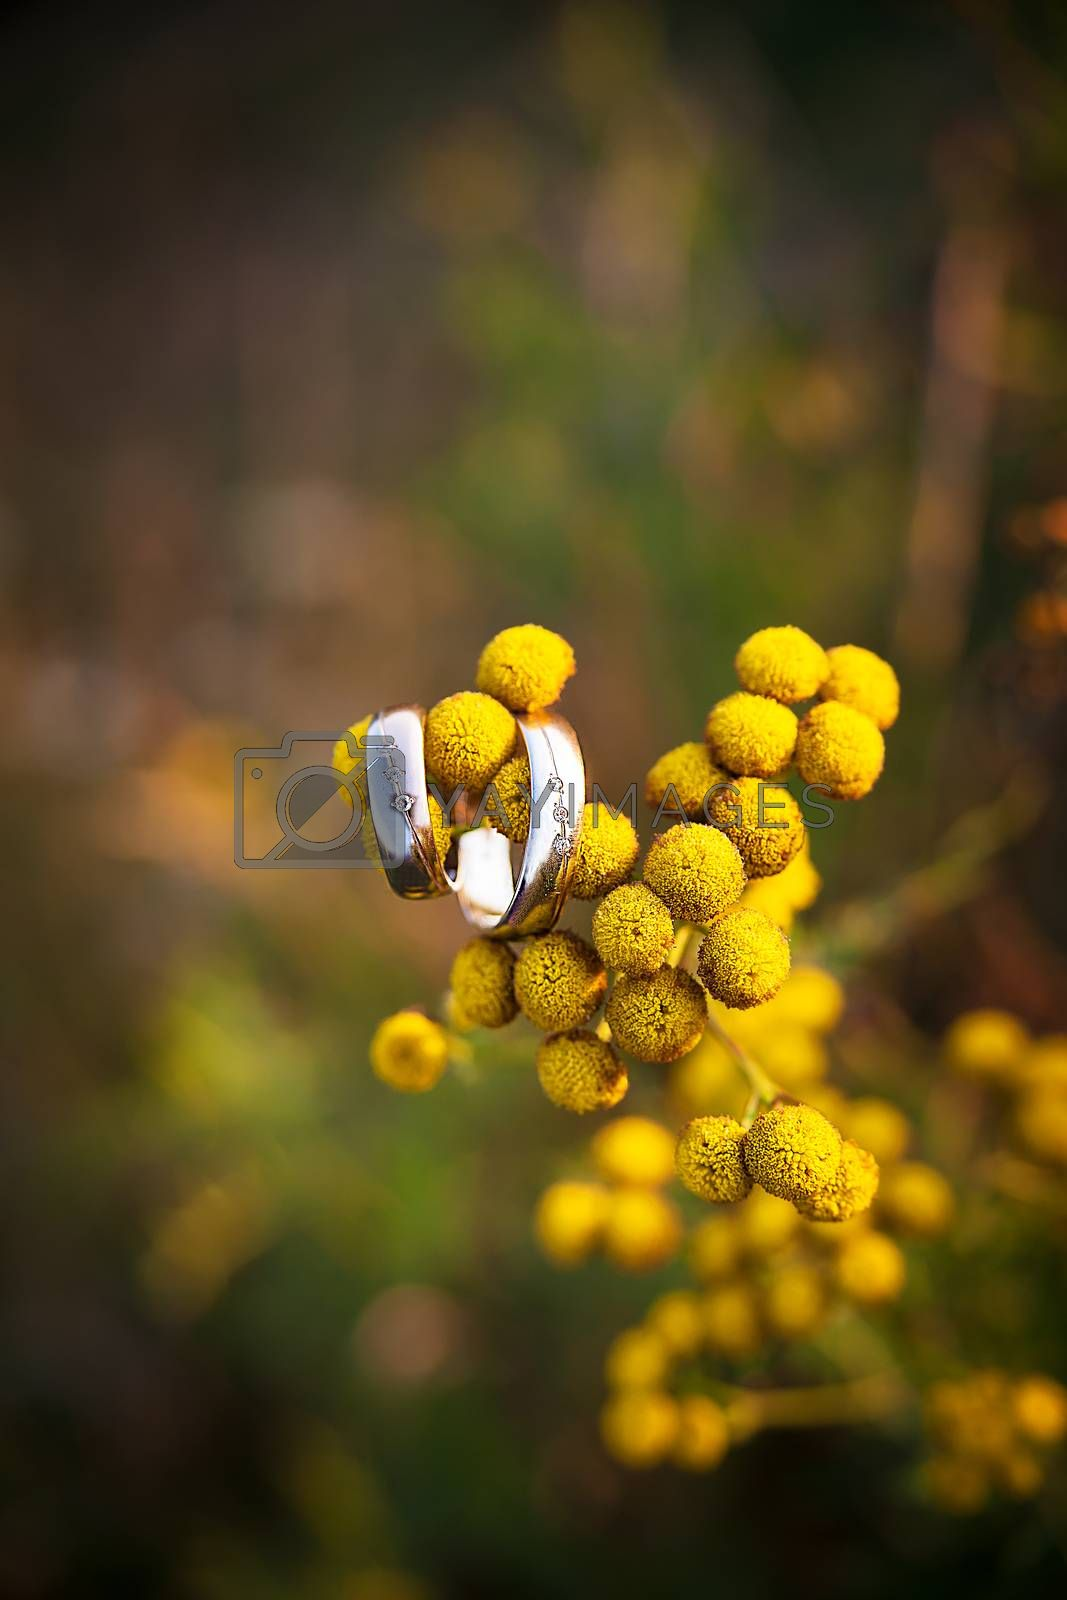 Royalty free image of diamond ring on yellow flower by sfinks